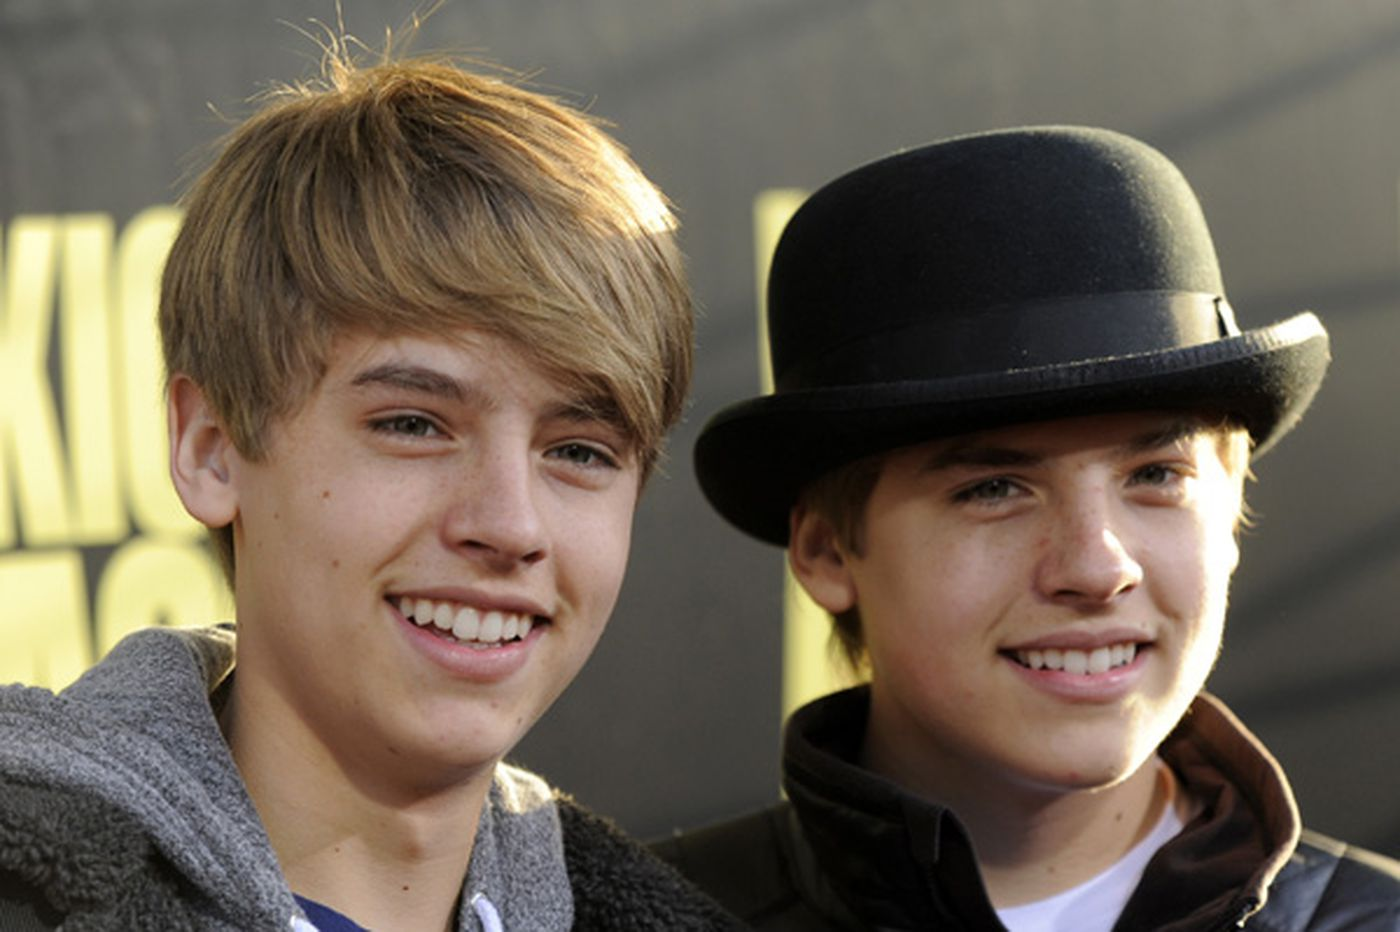 Former Disney star Dylan Sprouse undone by naked selfies